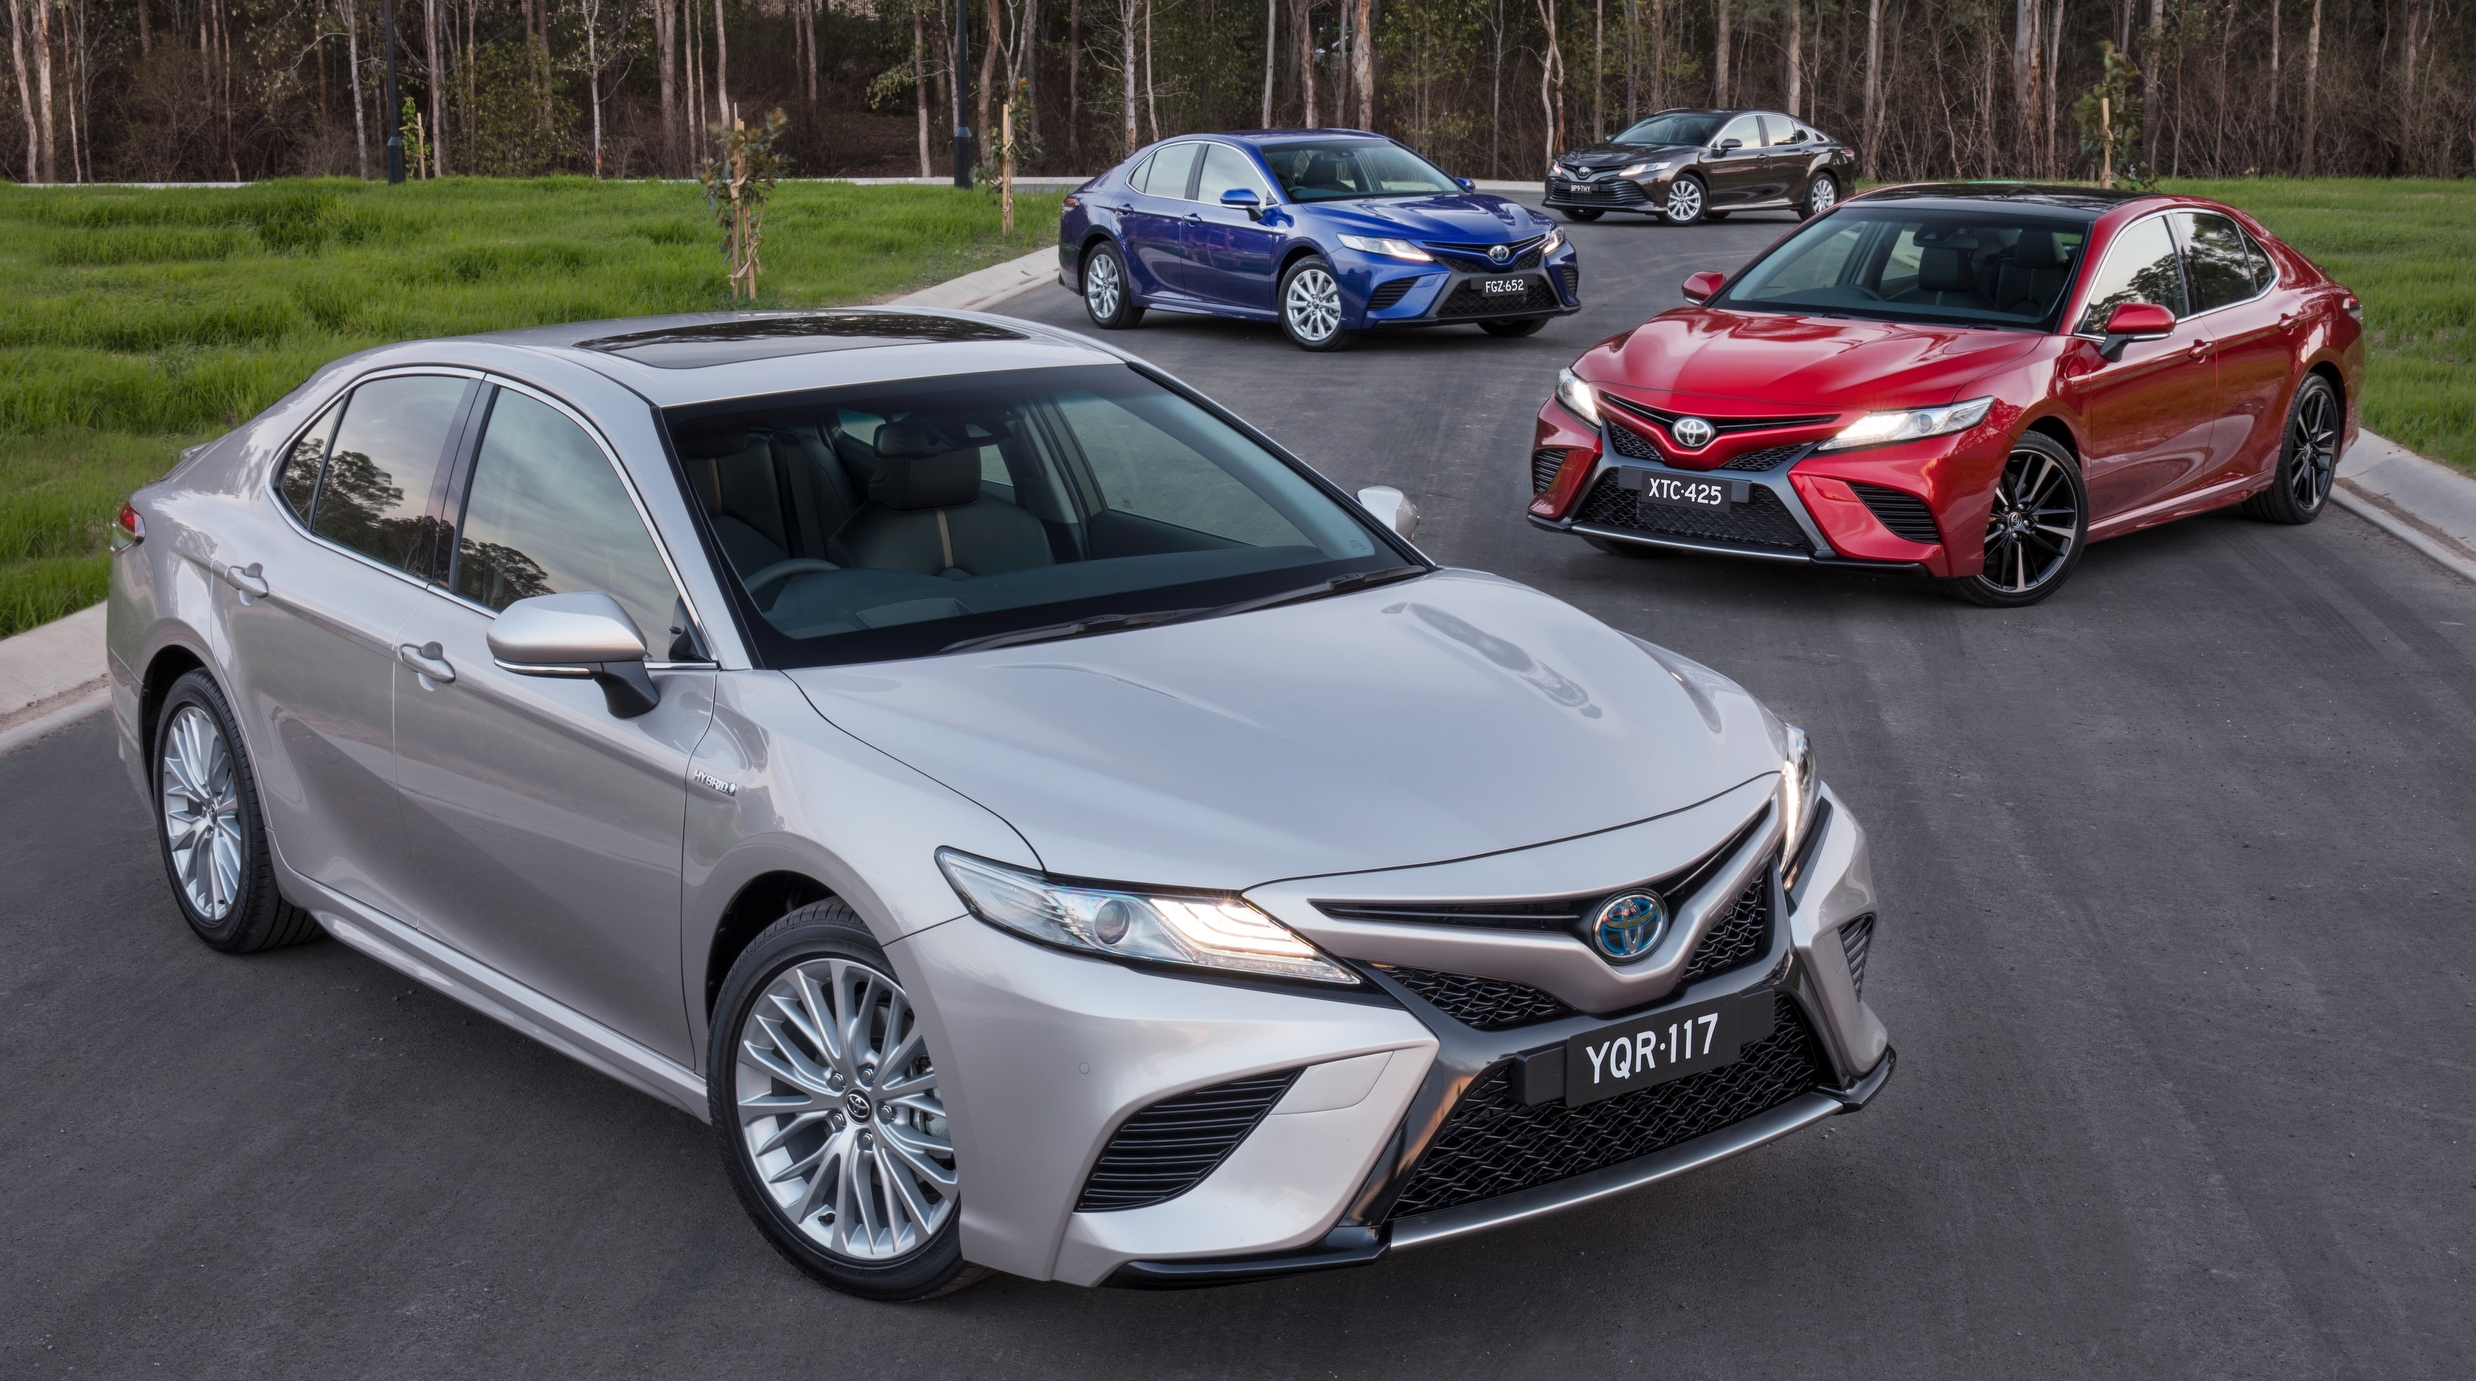 2018 toyota camry debuts in australia from rm86k image 741226. Black Bedroom Furniture Sets. Home Design Ideas